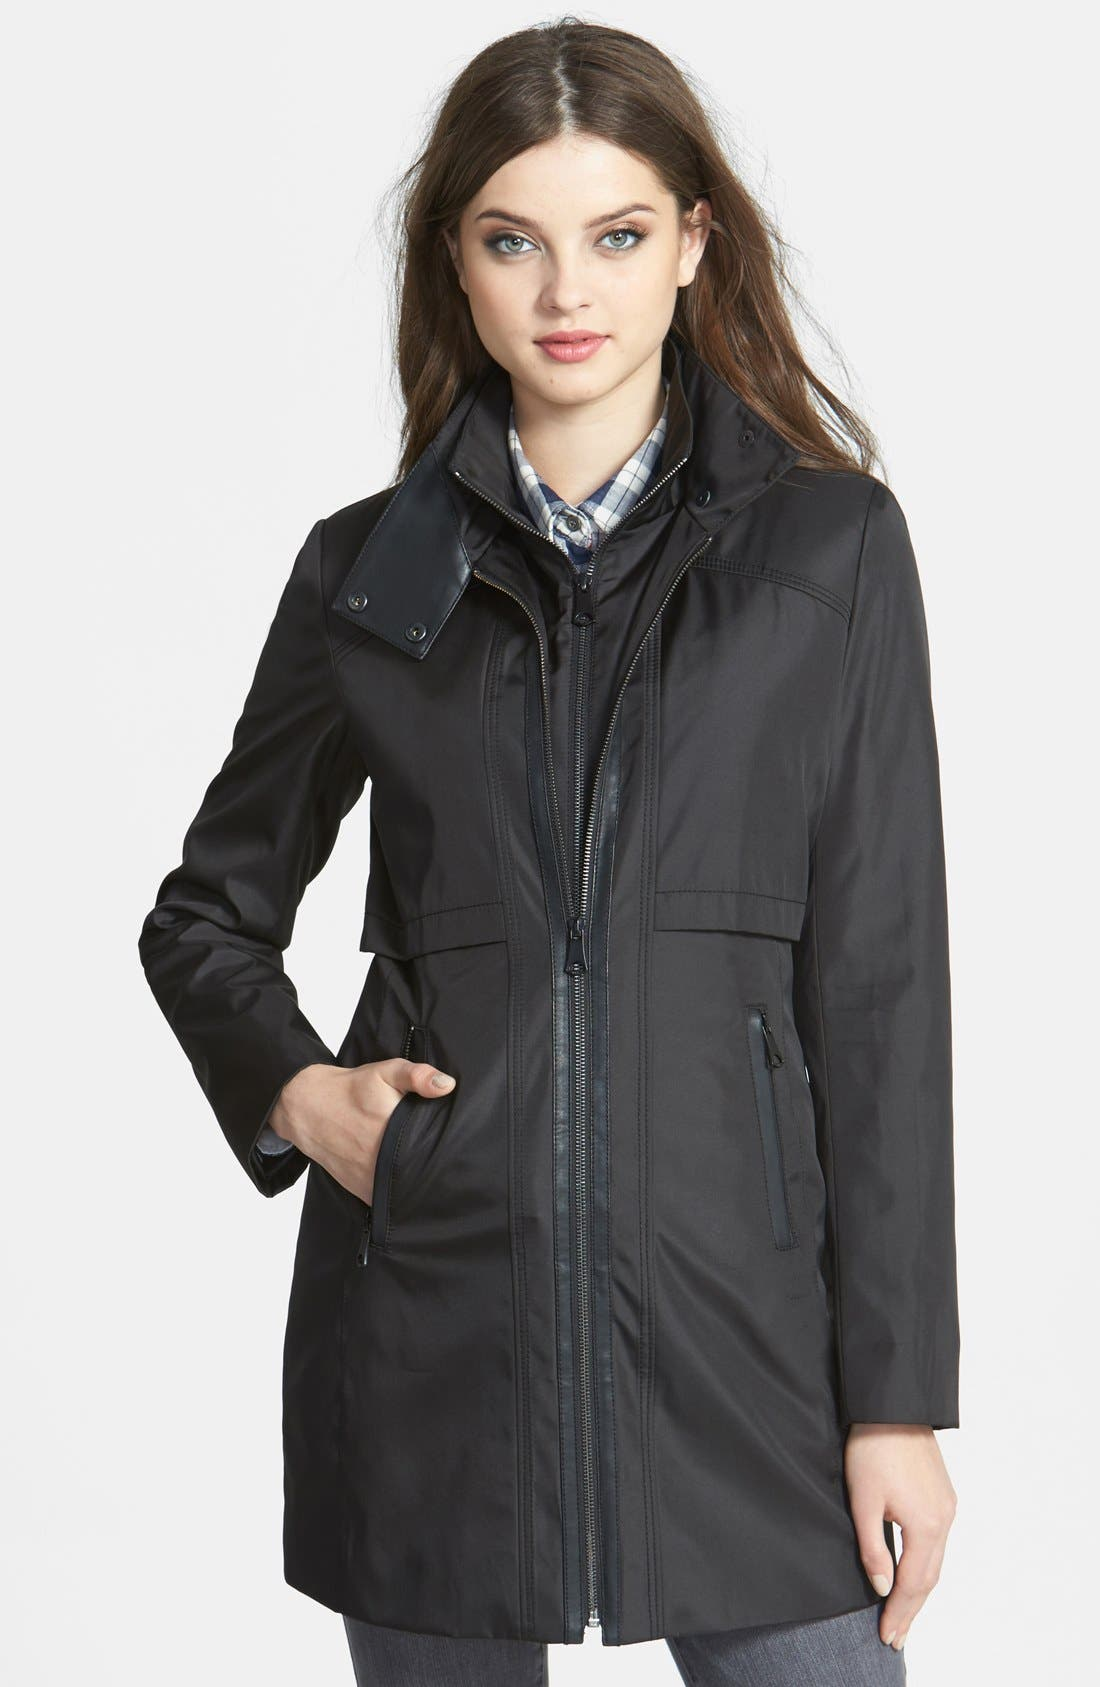 Alternate Image 1 Selected - Marc New York Faux Leather Trim Rain Jacket with Removable Bib (Online Only)